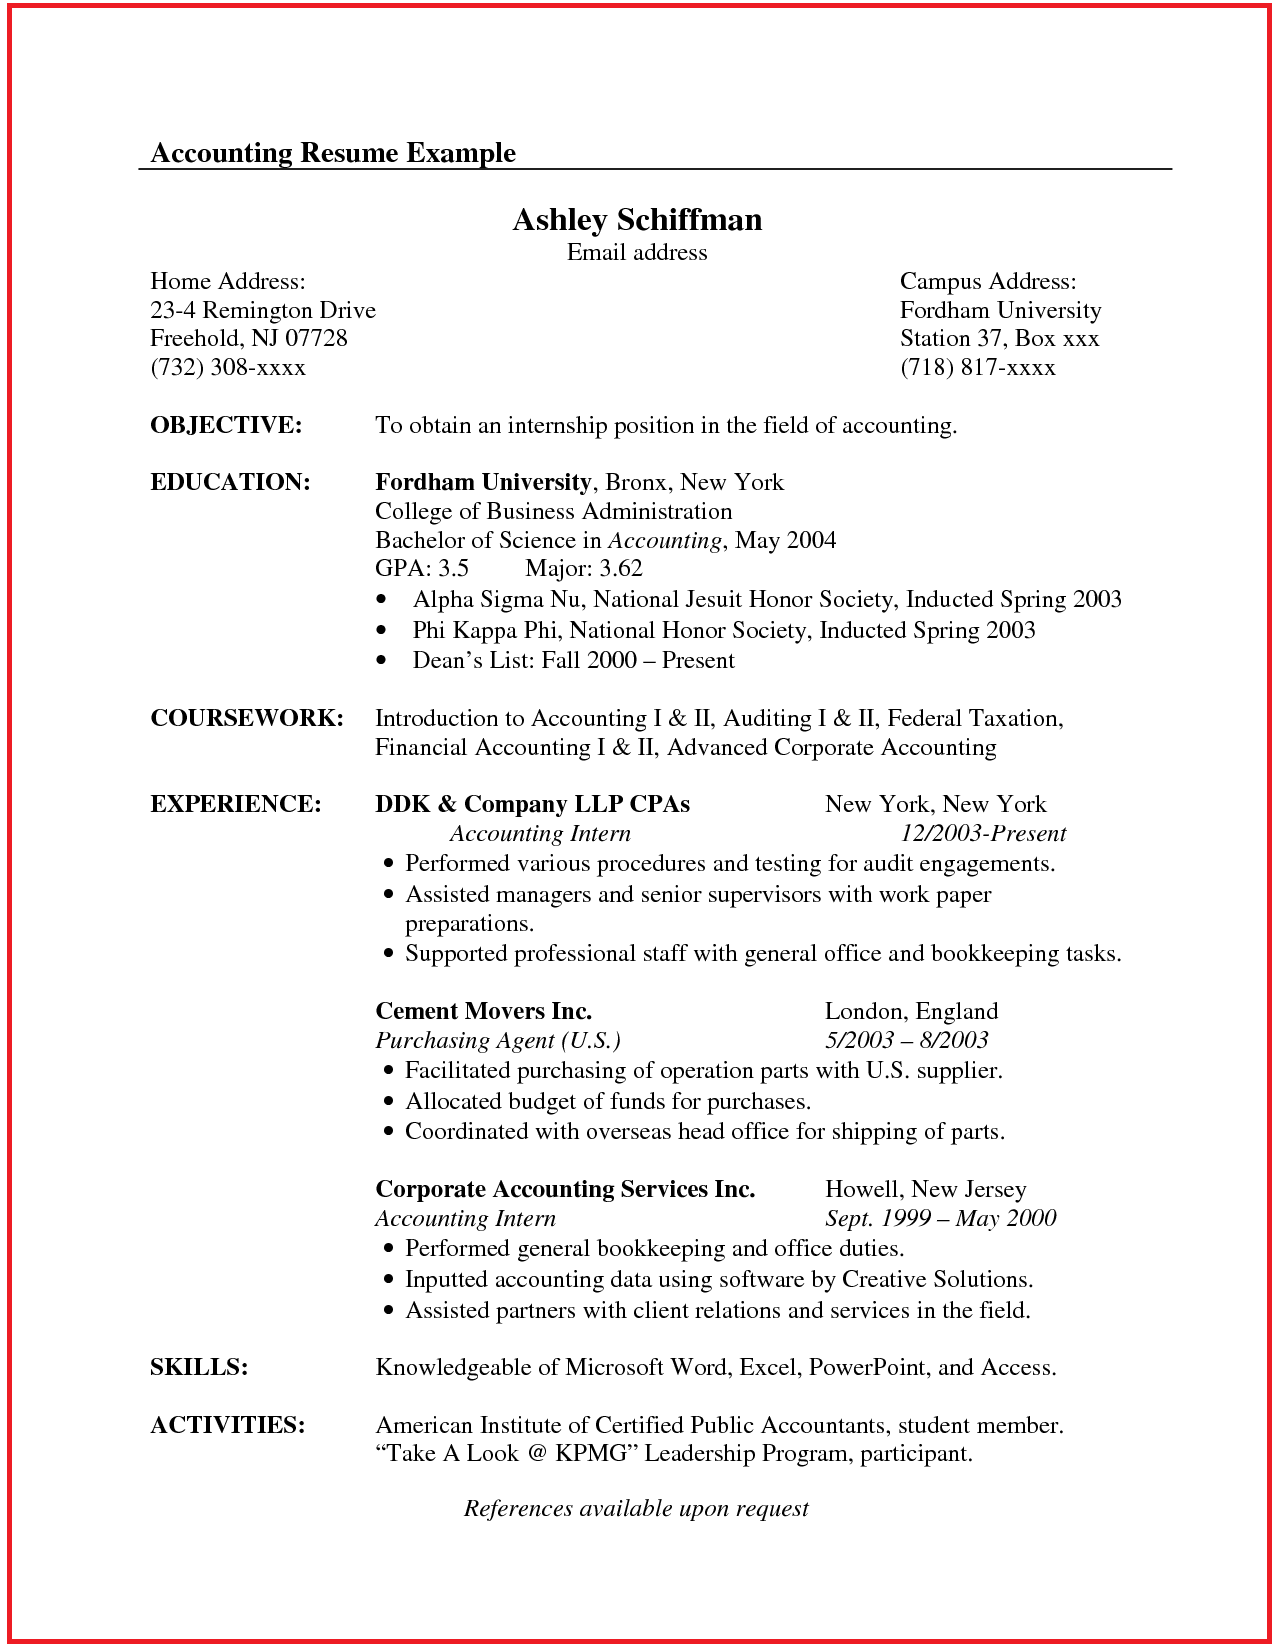 canada resume format canadian style resume format that will help get hired faster in canada top professionals resume templates samples sample canadian